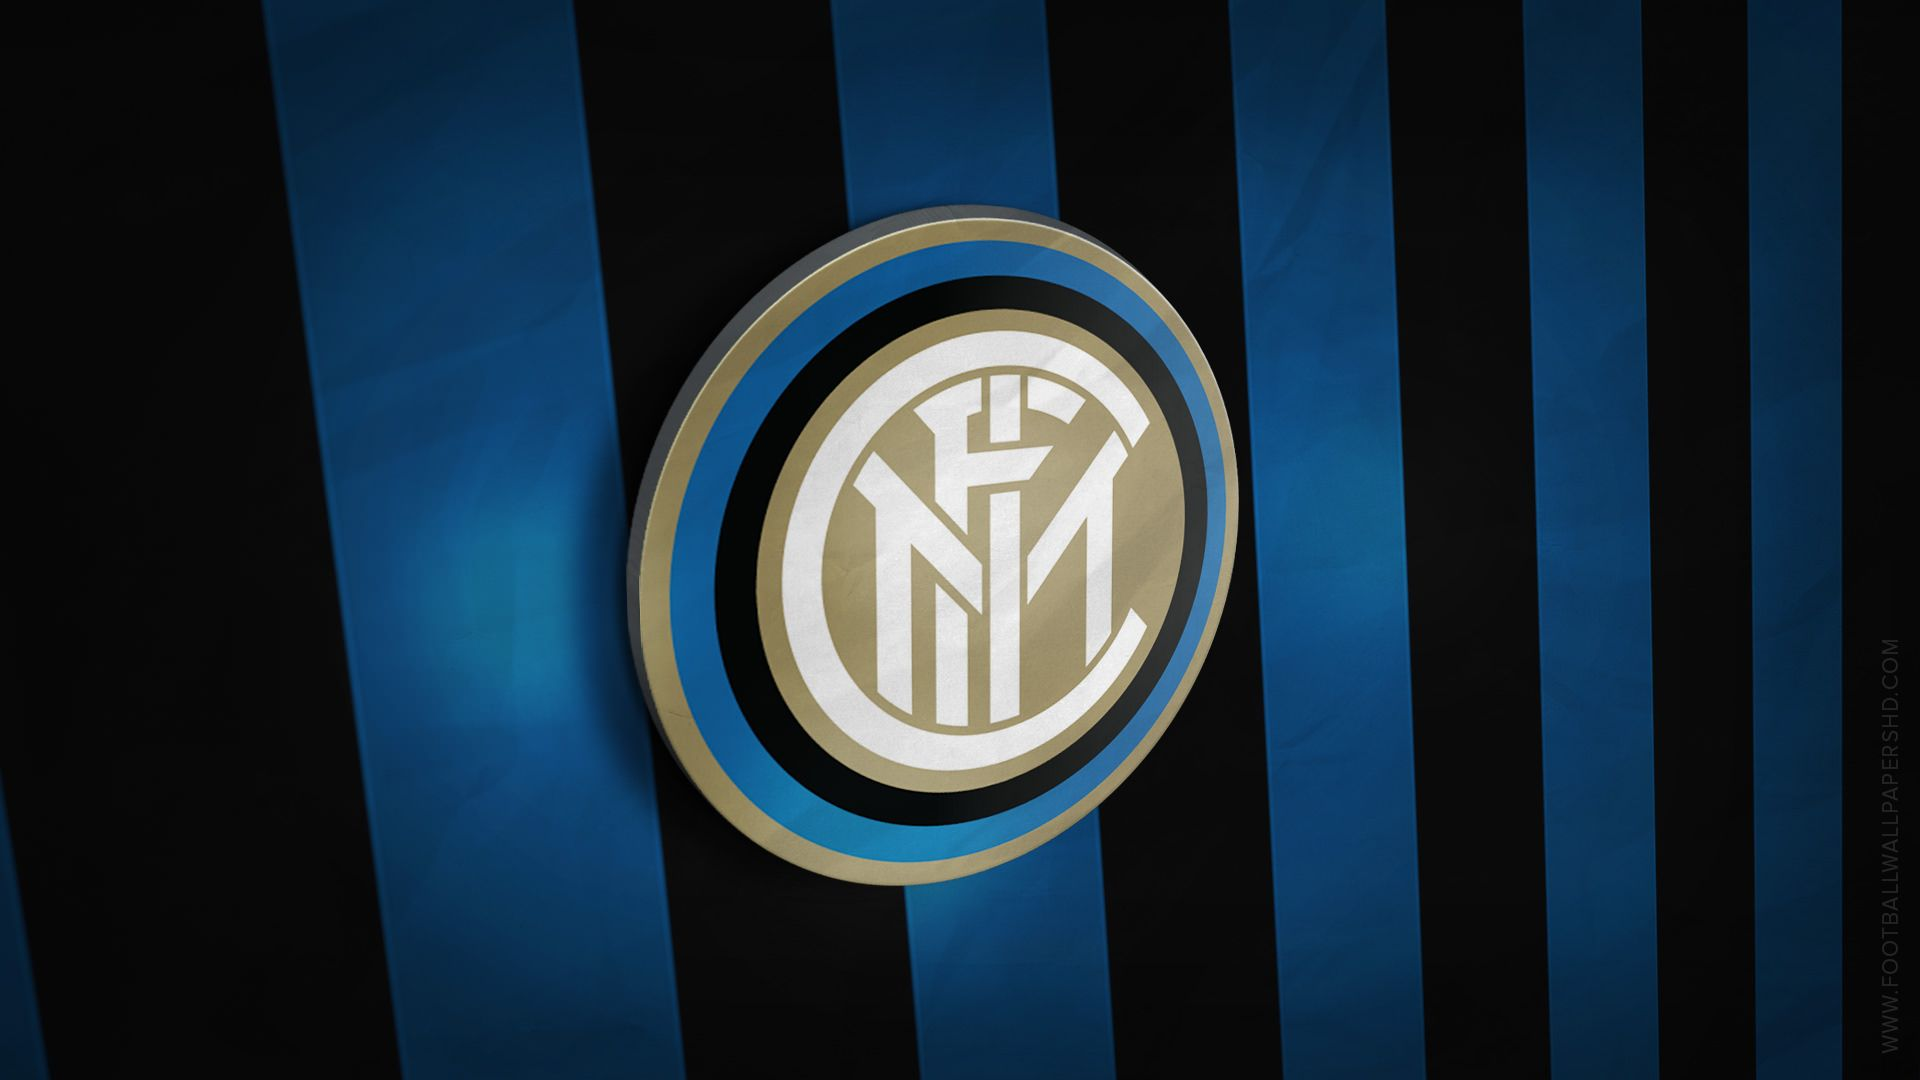 Inter Milan 3d Logo Wallpaper Football Wallpapers Hd Inter Milan Milan Bintang